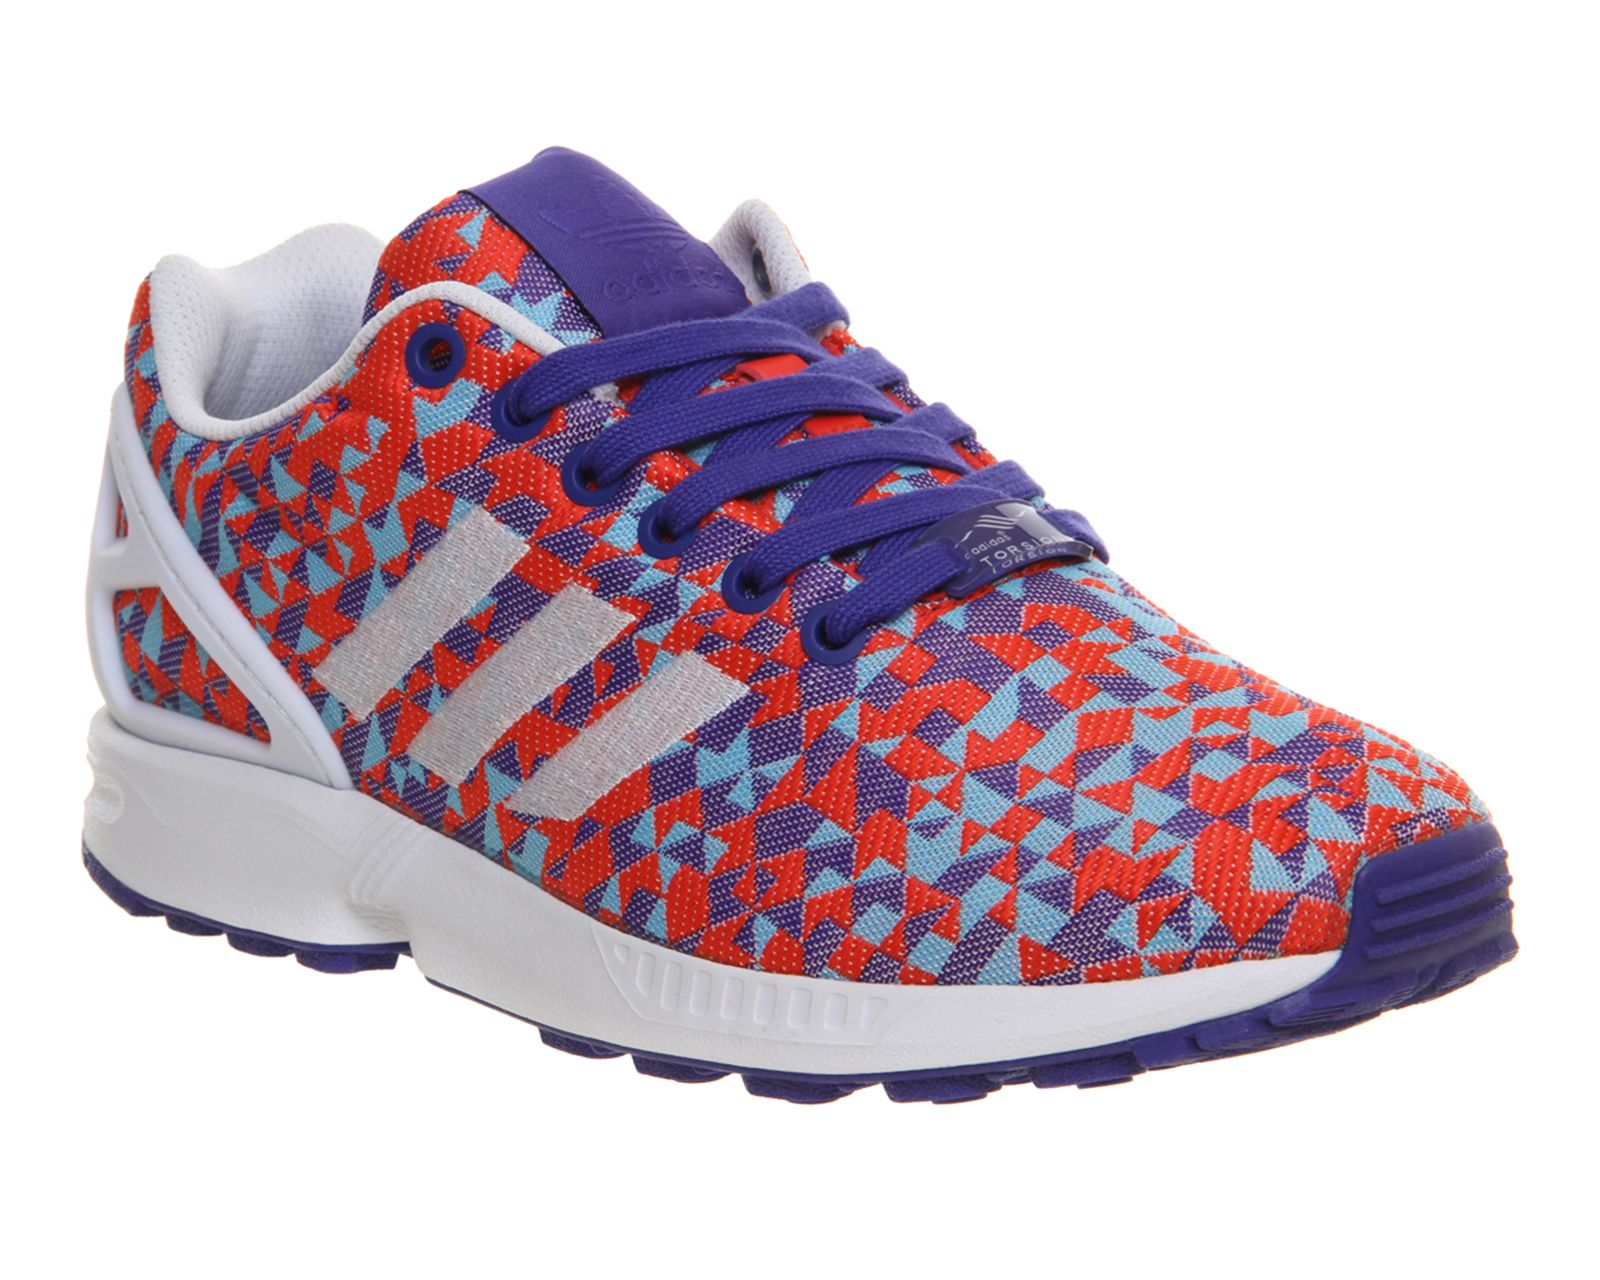 Adidas Zx Flux Weave Night Flash White Black - Unisex Sports